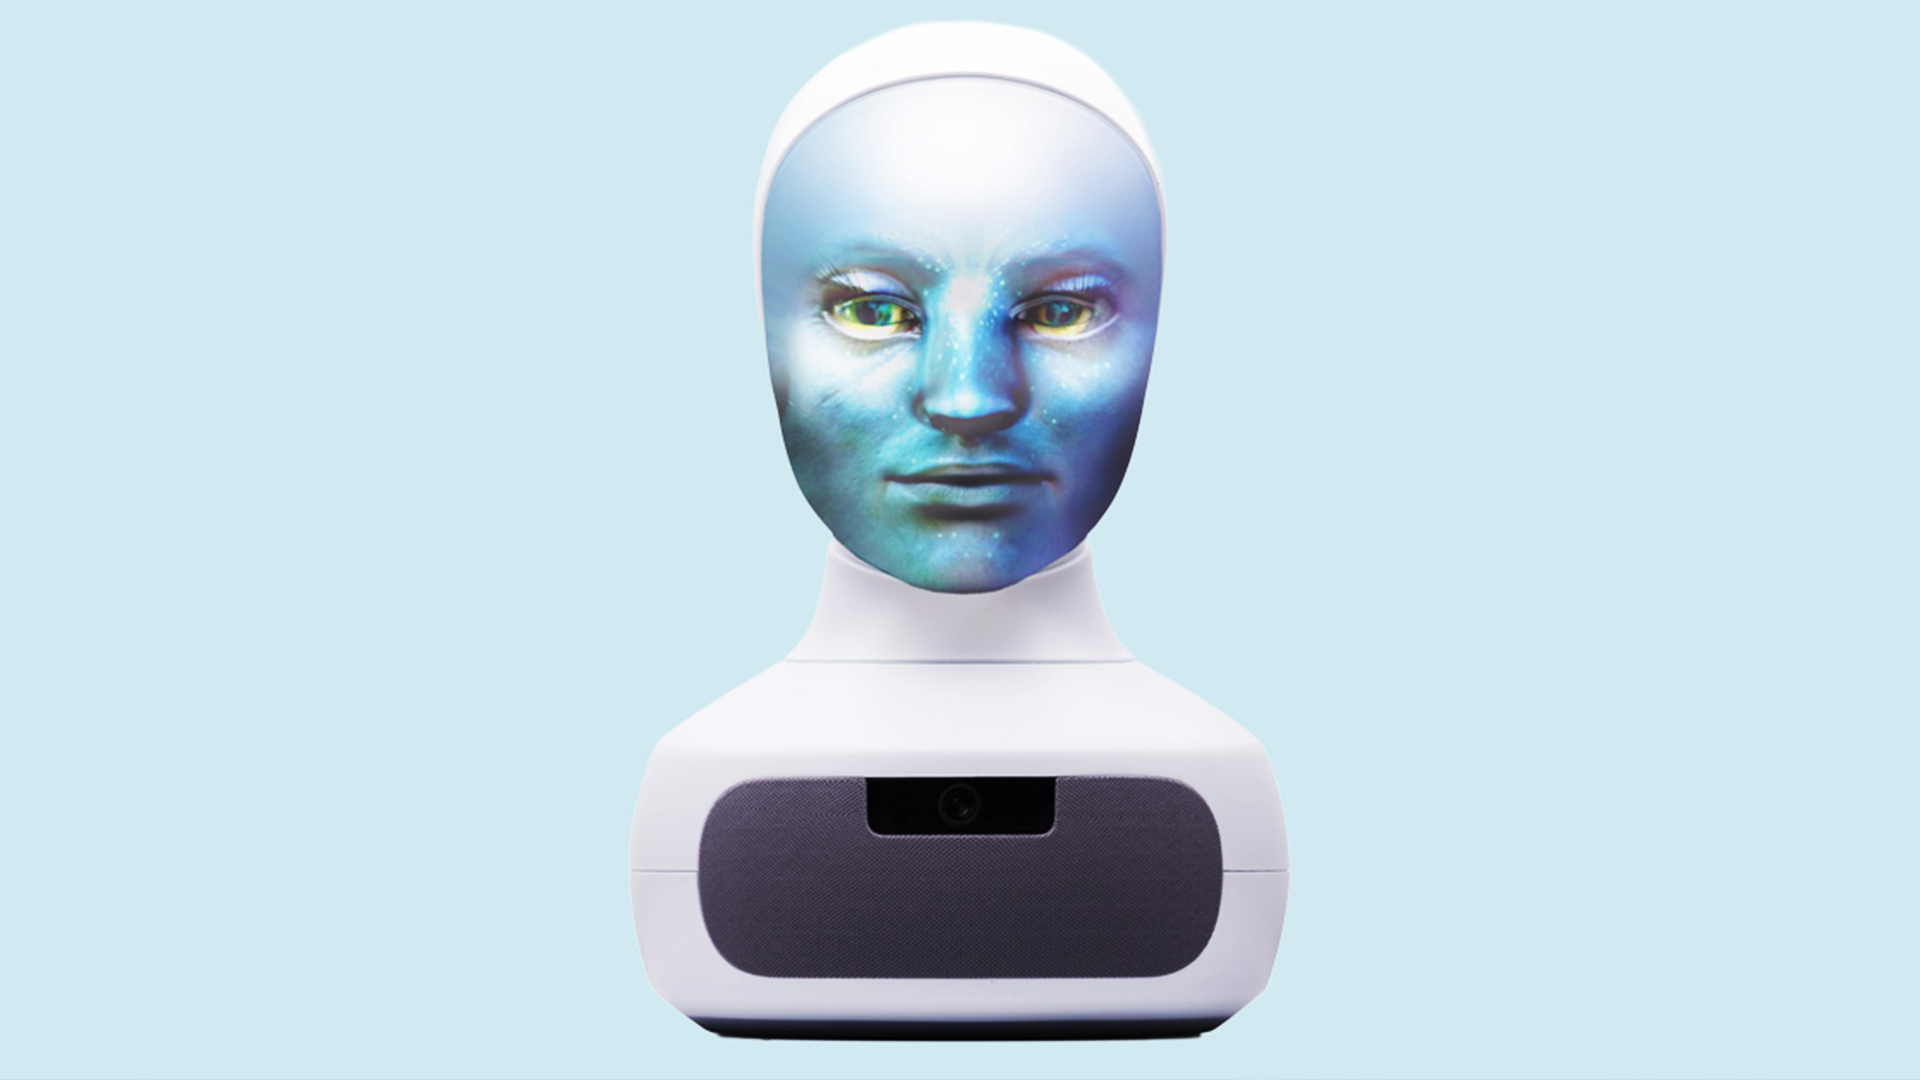 mashable.com - Mashable Video - Robots could be conducting job interviews next year